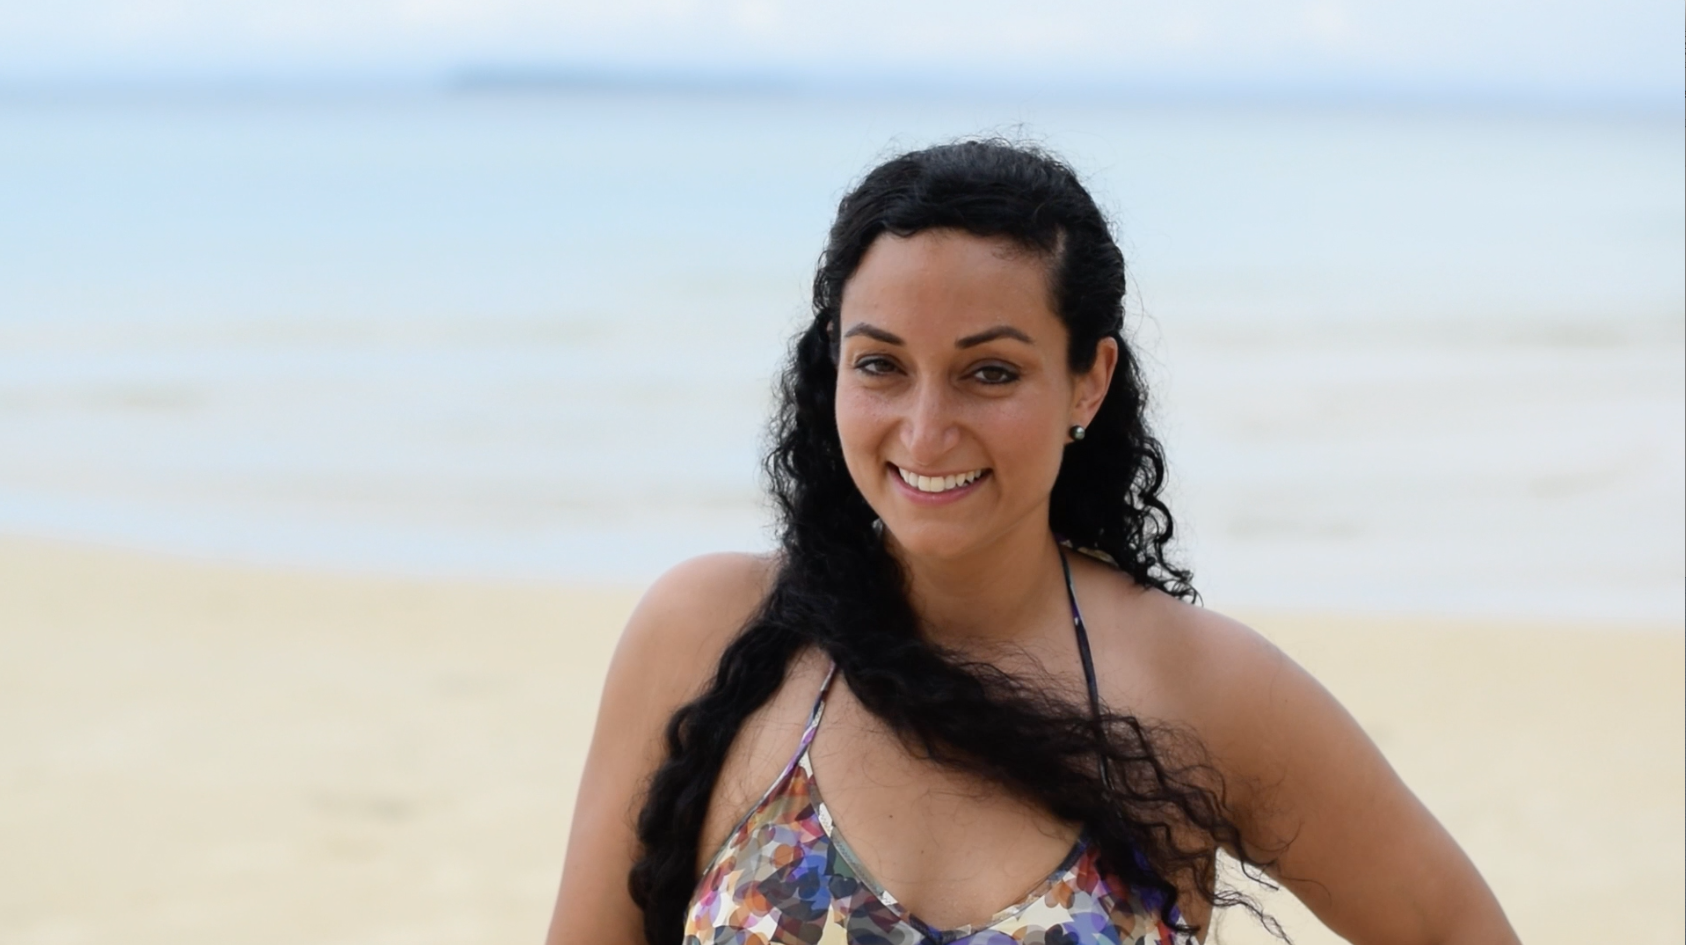 Shirin reflects on her Second Chance stint.